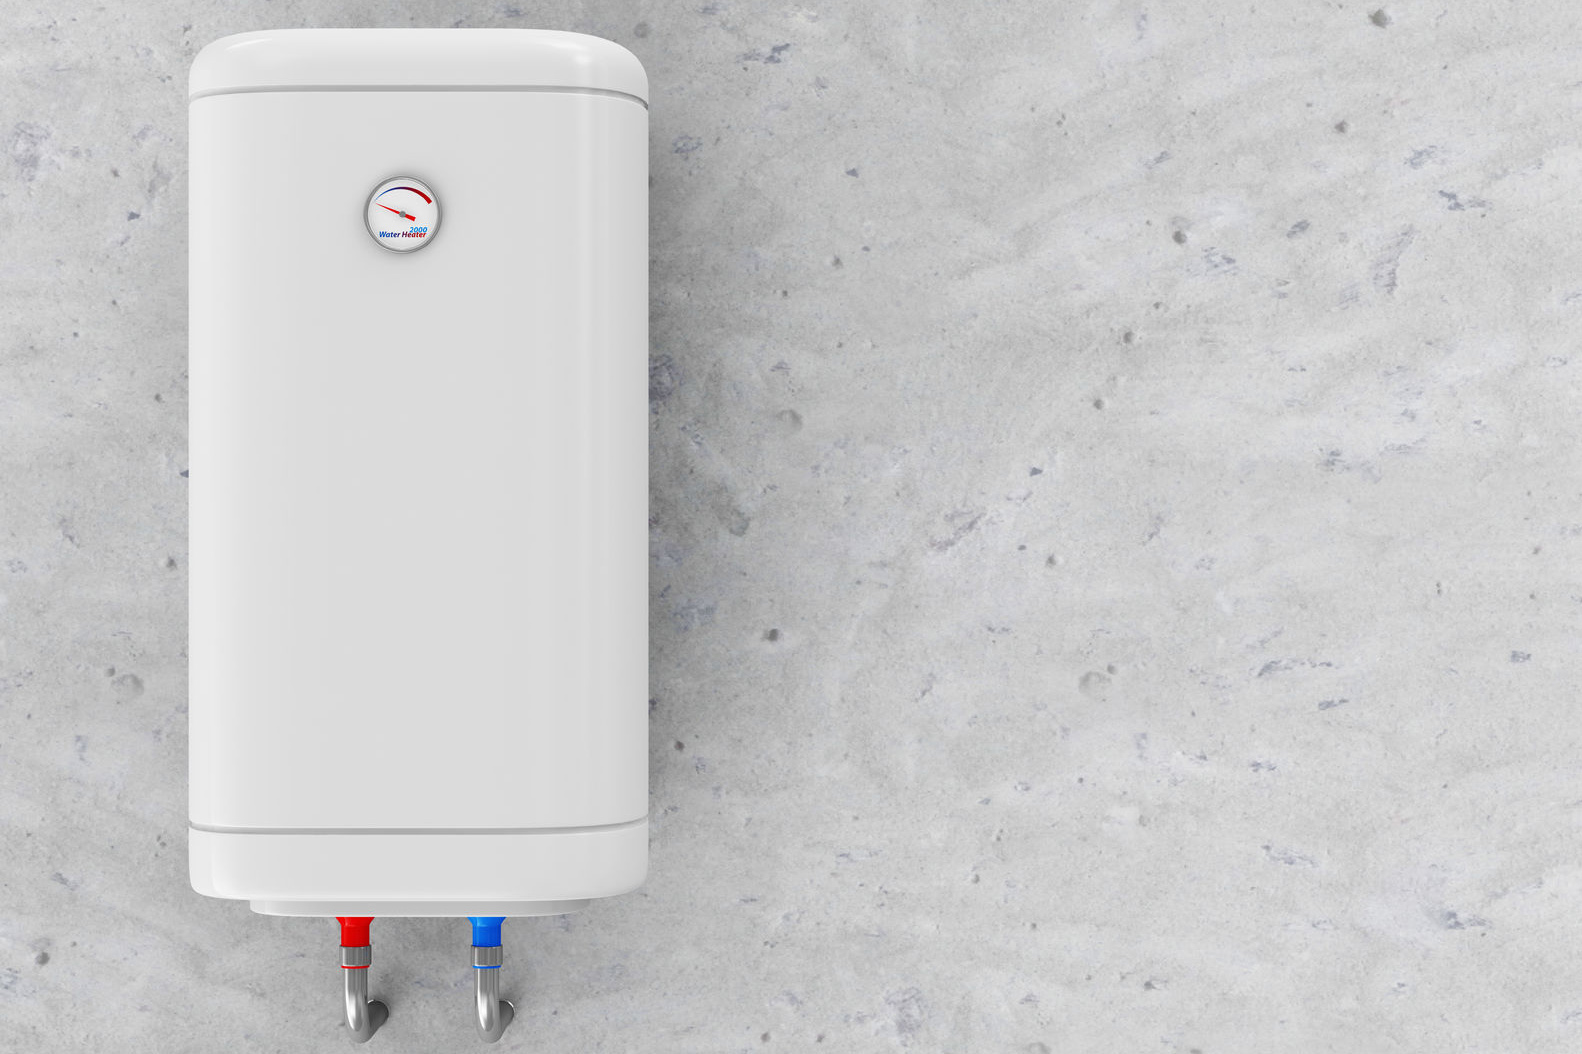 Thinking of upgrading to a tankless water heater? Before doing so, learn  the pros and cons of installing one - cost, requirements, and maintenance.